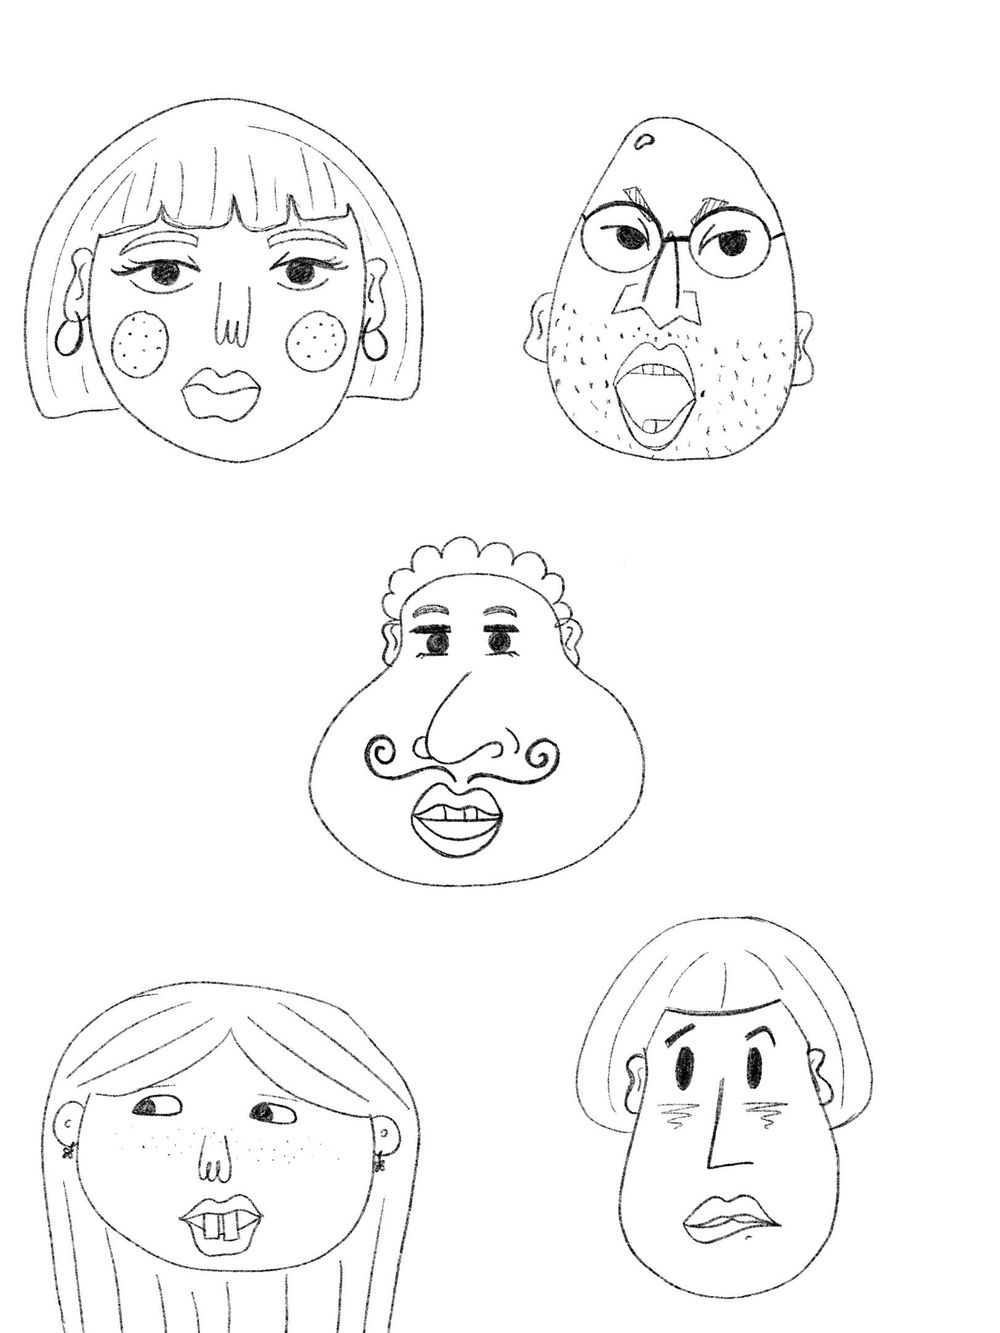 Fun With Drawing - image 4 - student project